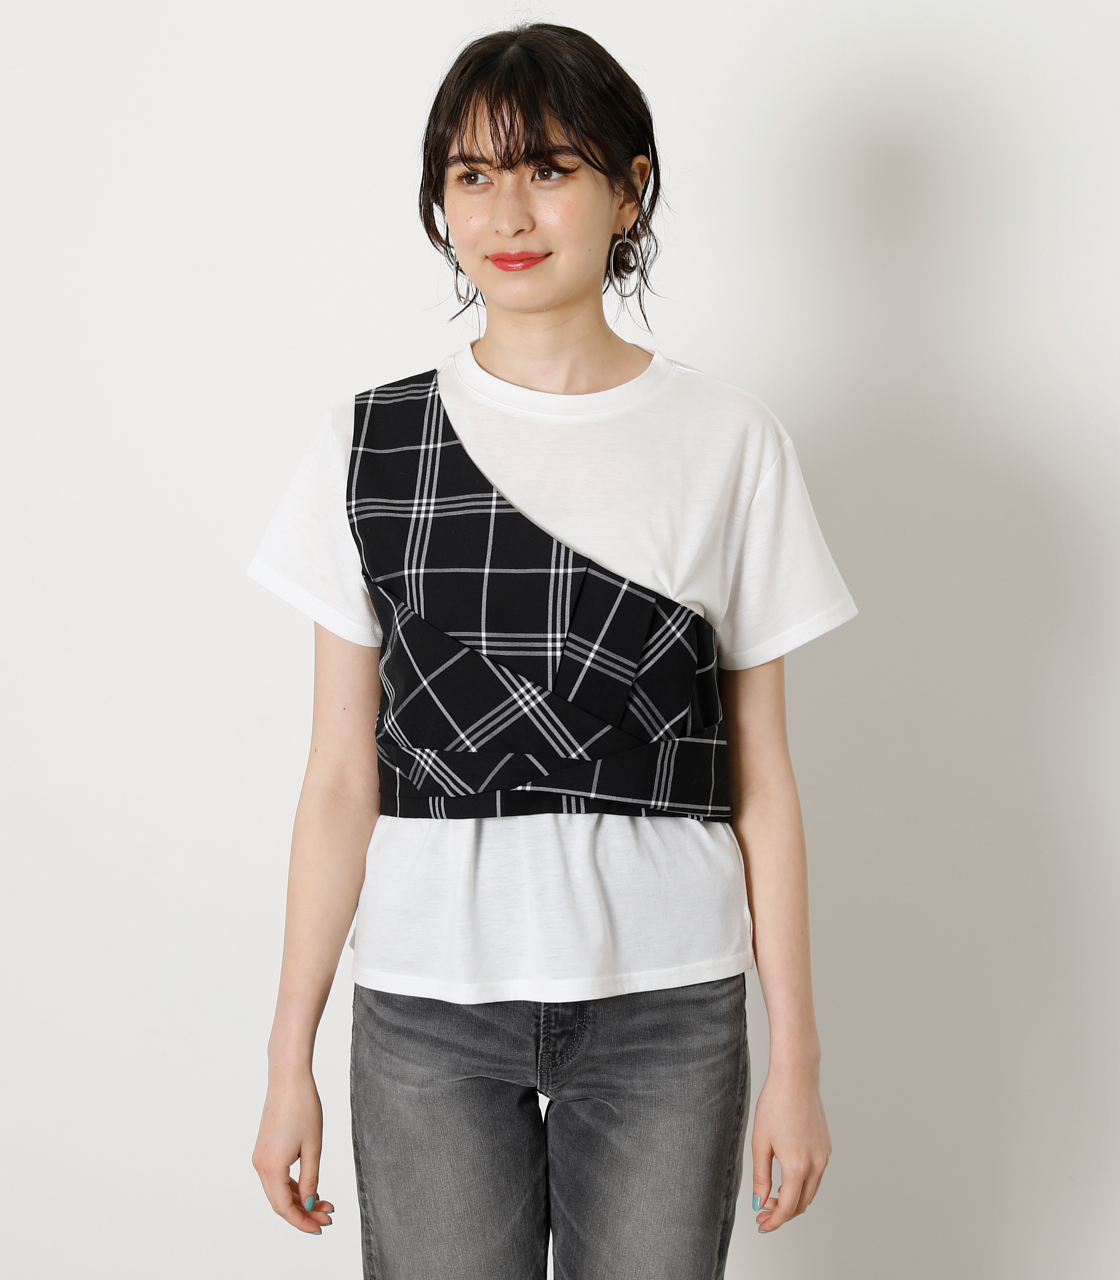 ONESHOULDER CHECK BUSTIER TOPS/ワンショルダーチェックビジタートップス 詳細画像 柄BLK 4